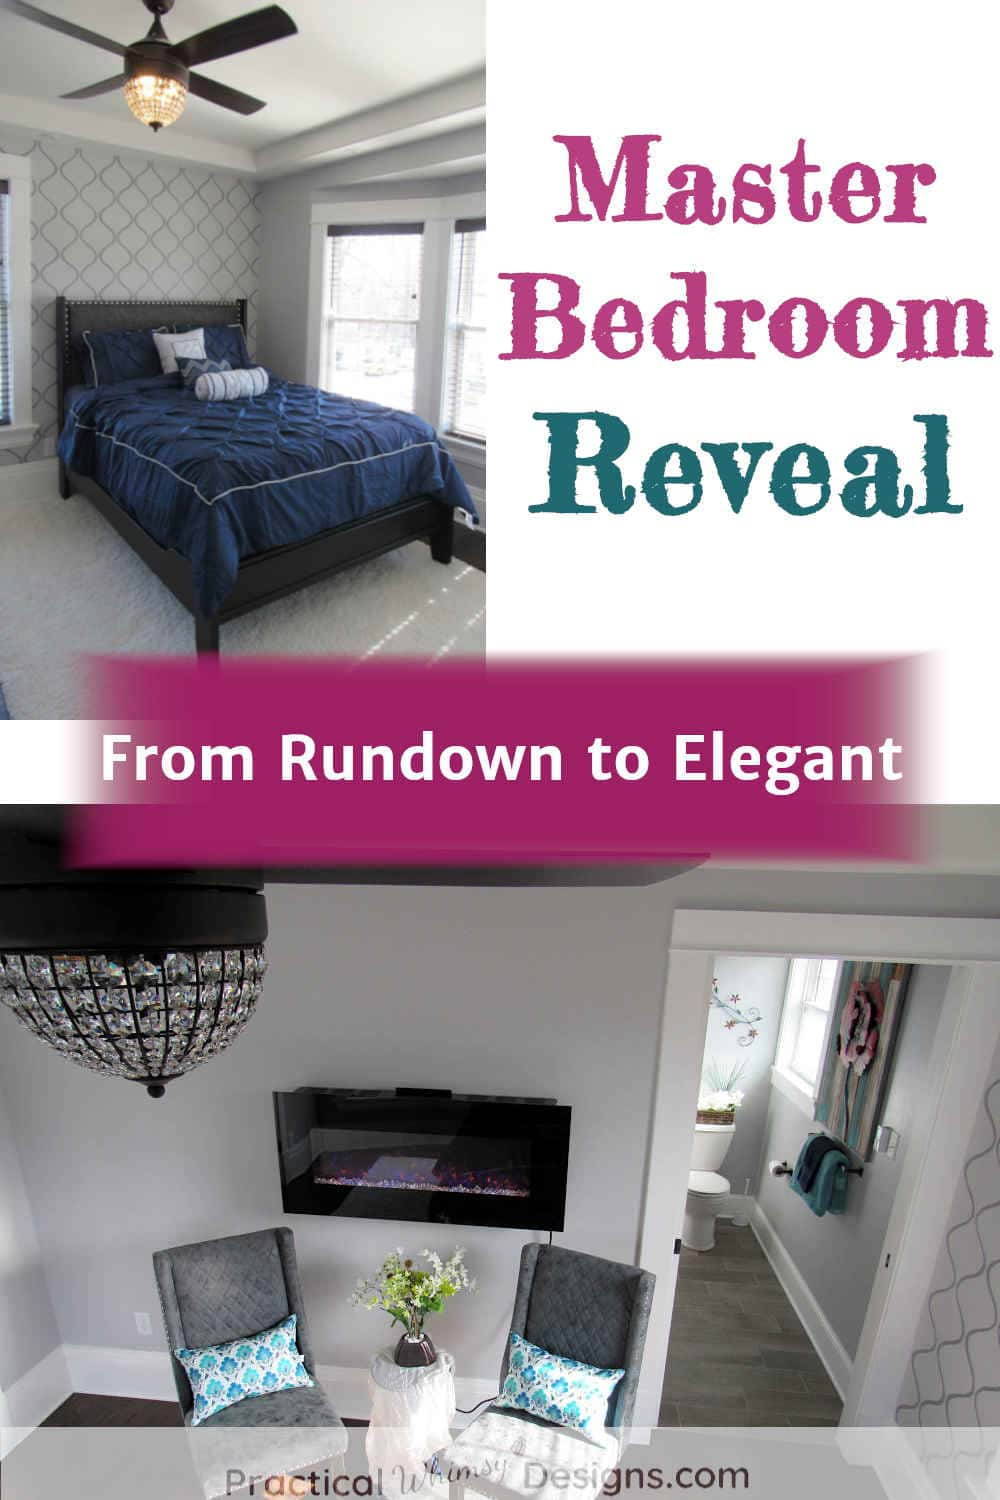 Master bedroom reveal with pictures of blue bed, light, and chairs